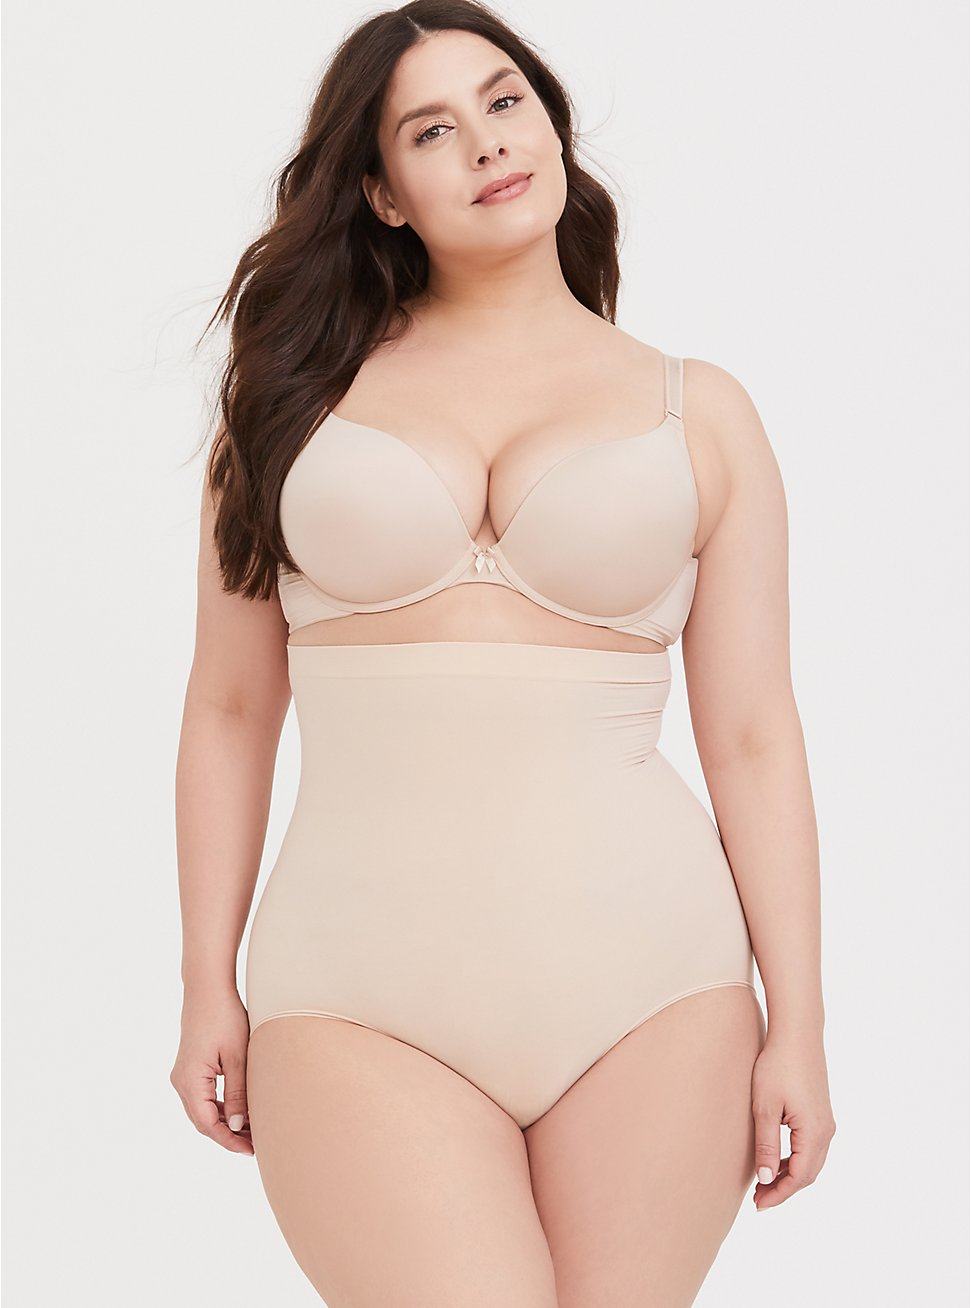 Cheap Shapewear Used Prices